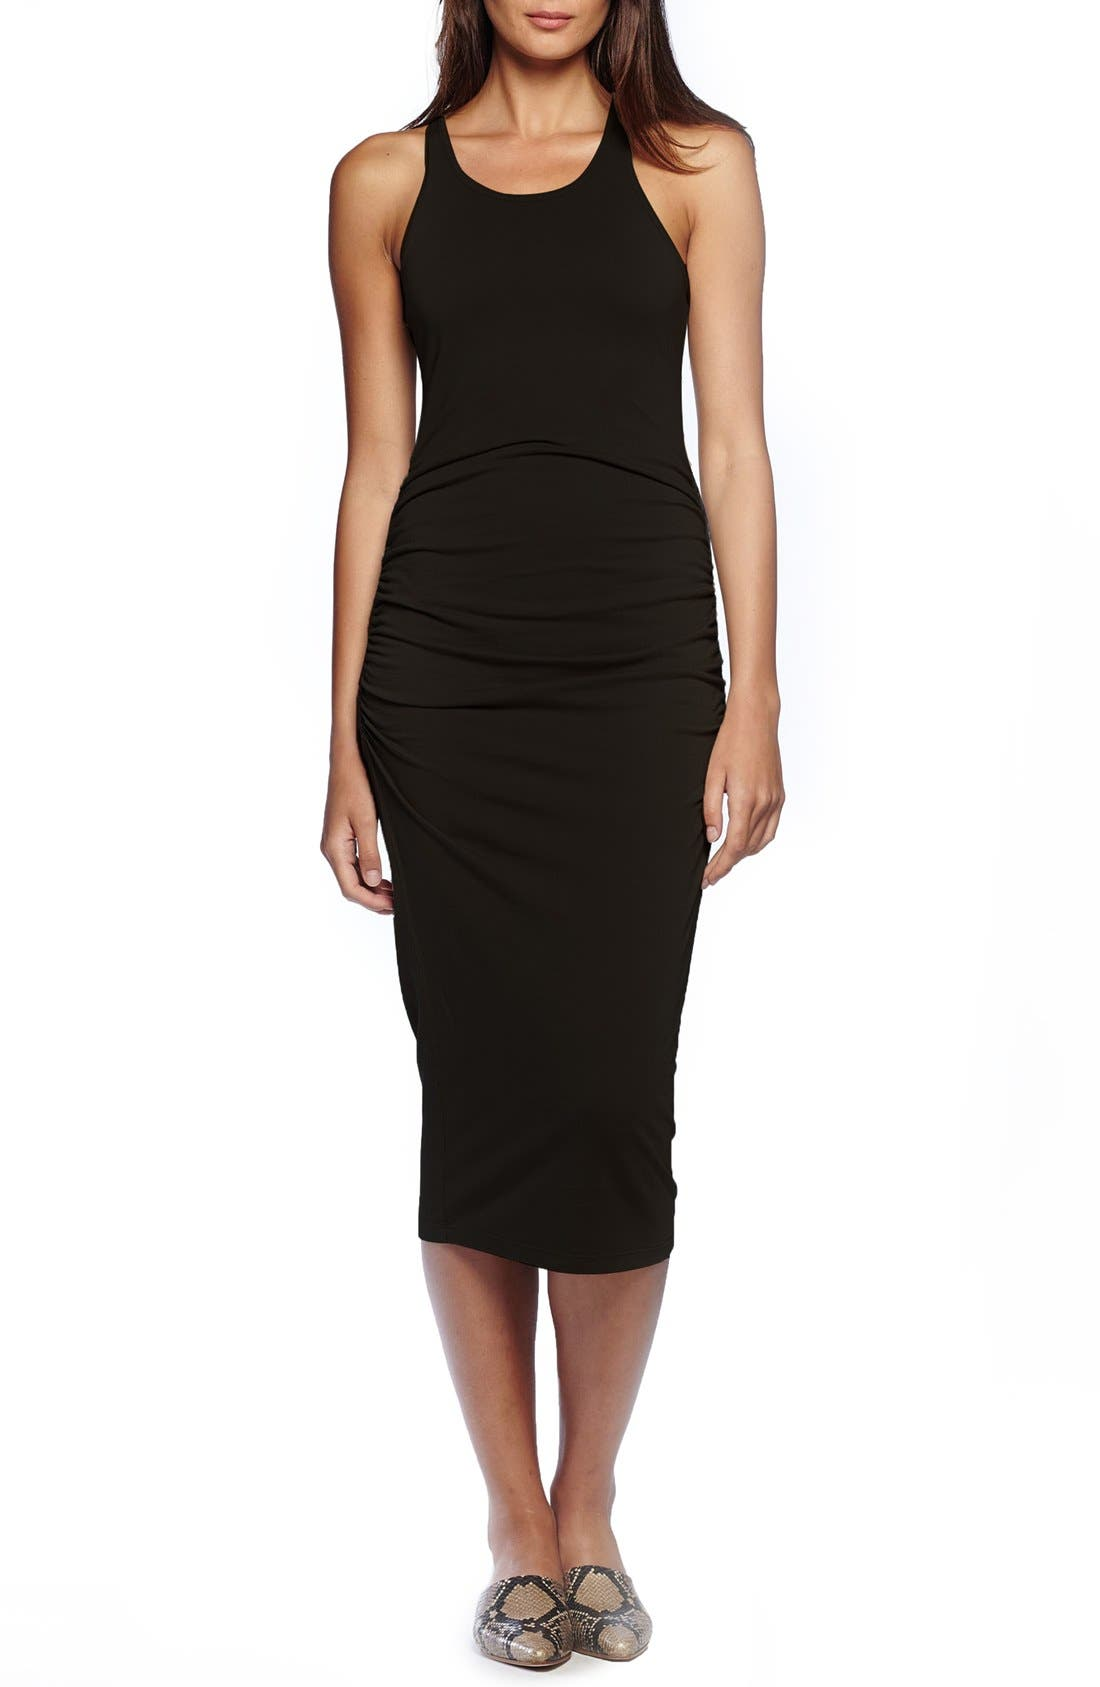 Alternate Image 1 Selected - Michael Stars Racerback Midi Dress (Regular & Petite)